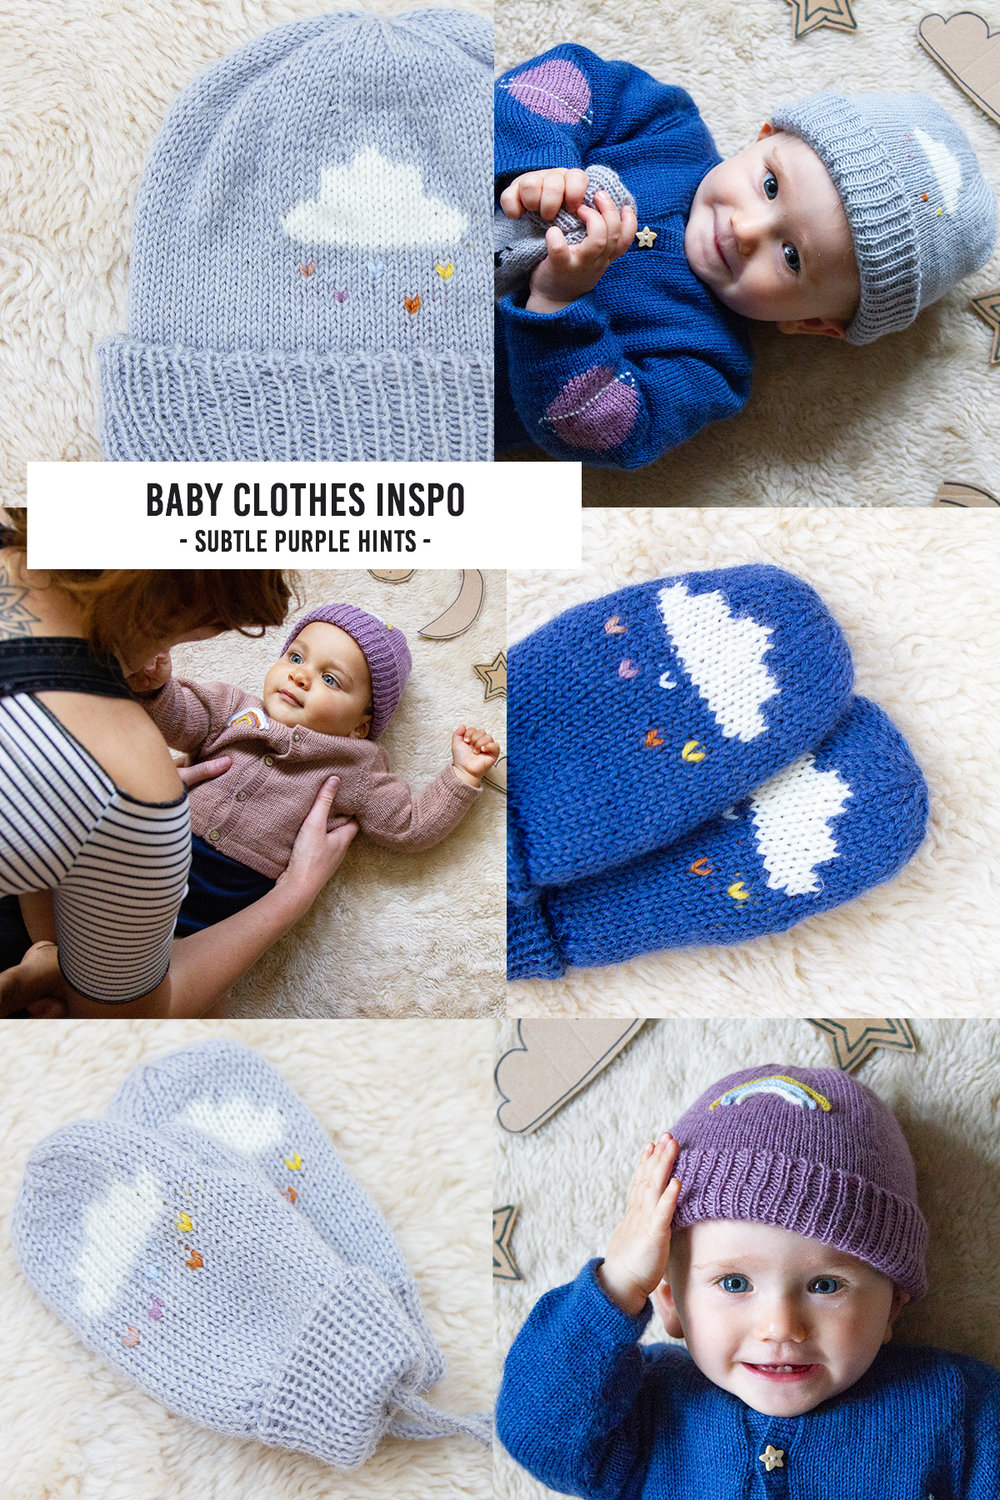 Subtle purple baby clothes ideas